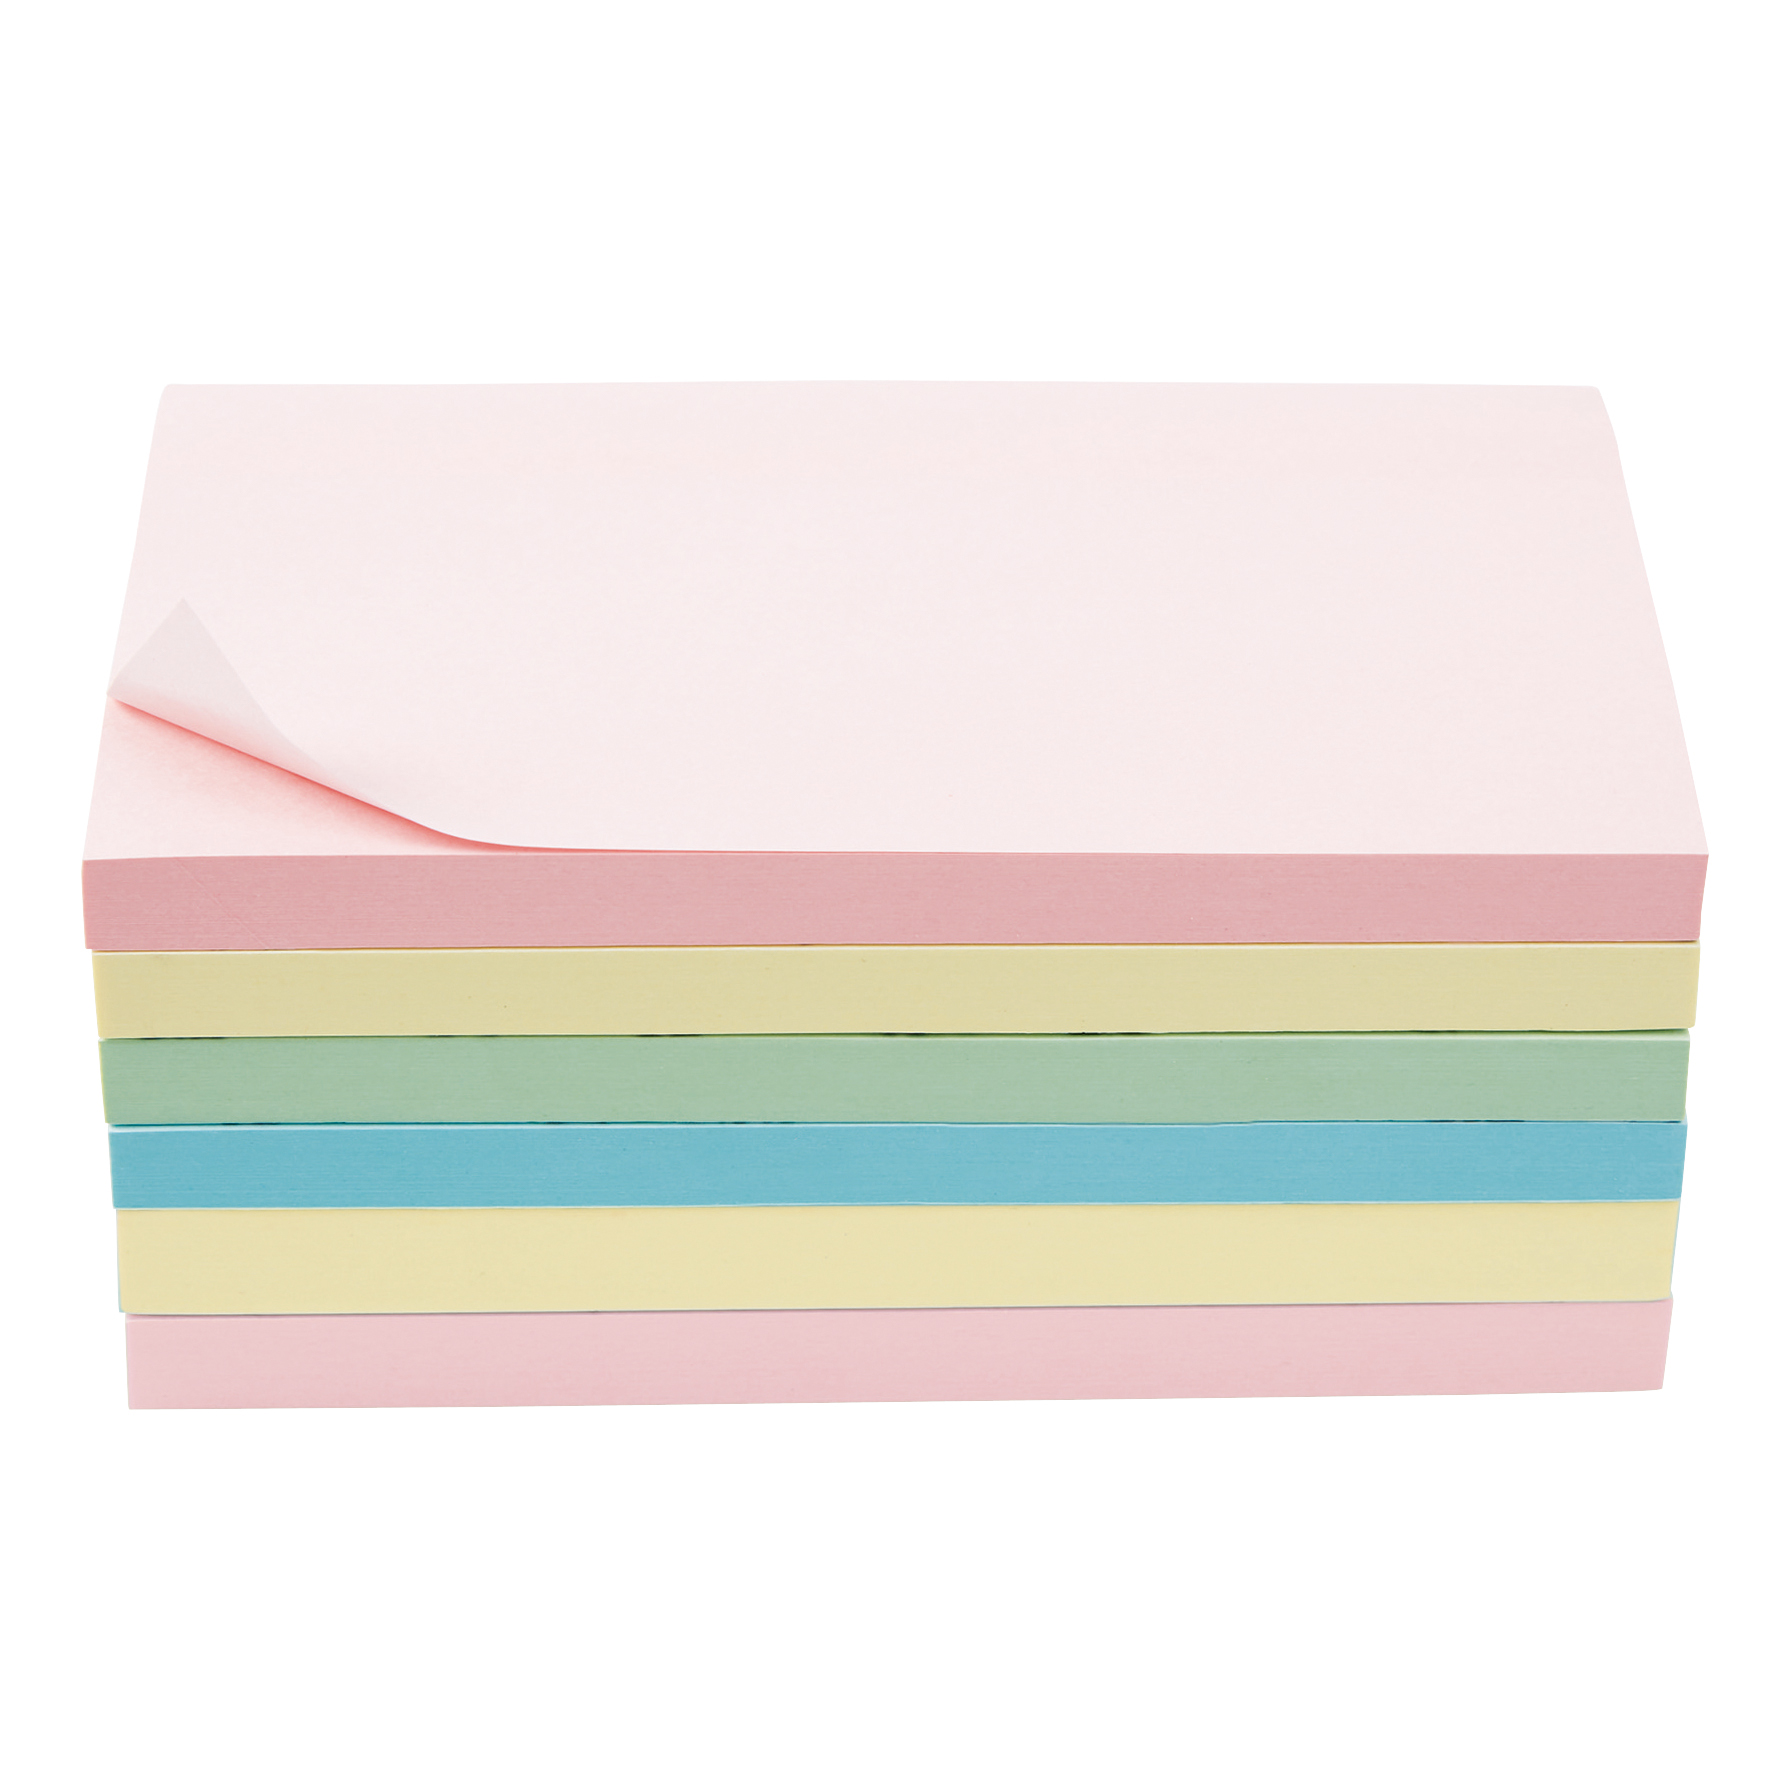 5 Star Office Extra Sticky Re-Move Notes Pad of 90 Sheets 76x127mm 4 Assorted Pastel Colours Pack 6